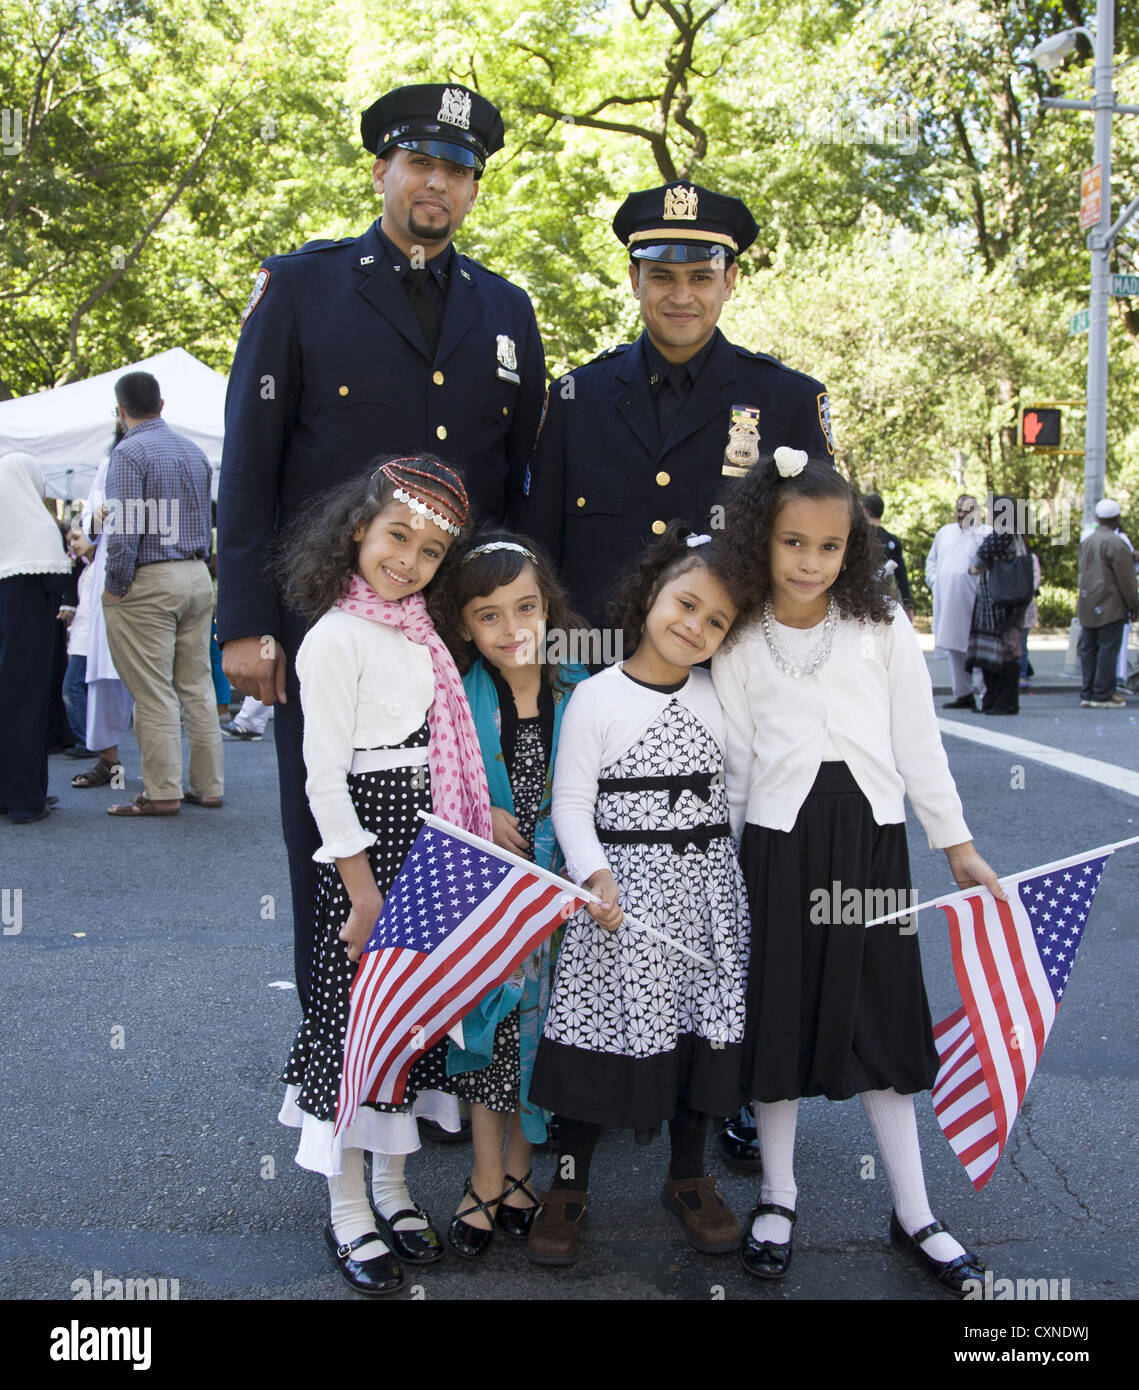 Annual Muslim American Day Parade on Madison Avenue in New York City. NYC police officers with their kids march - Stock Image